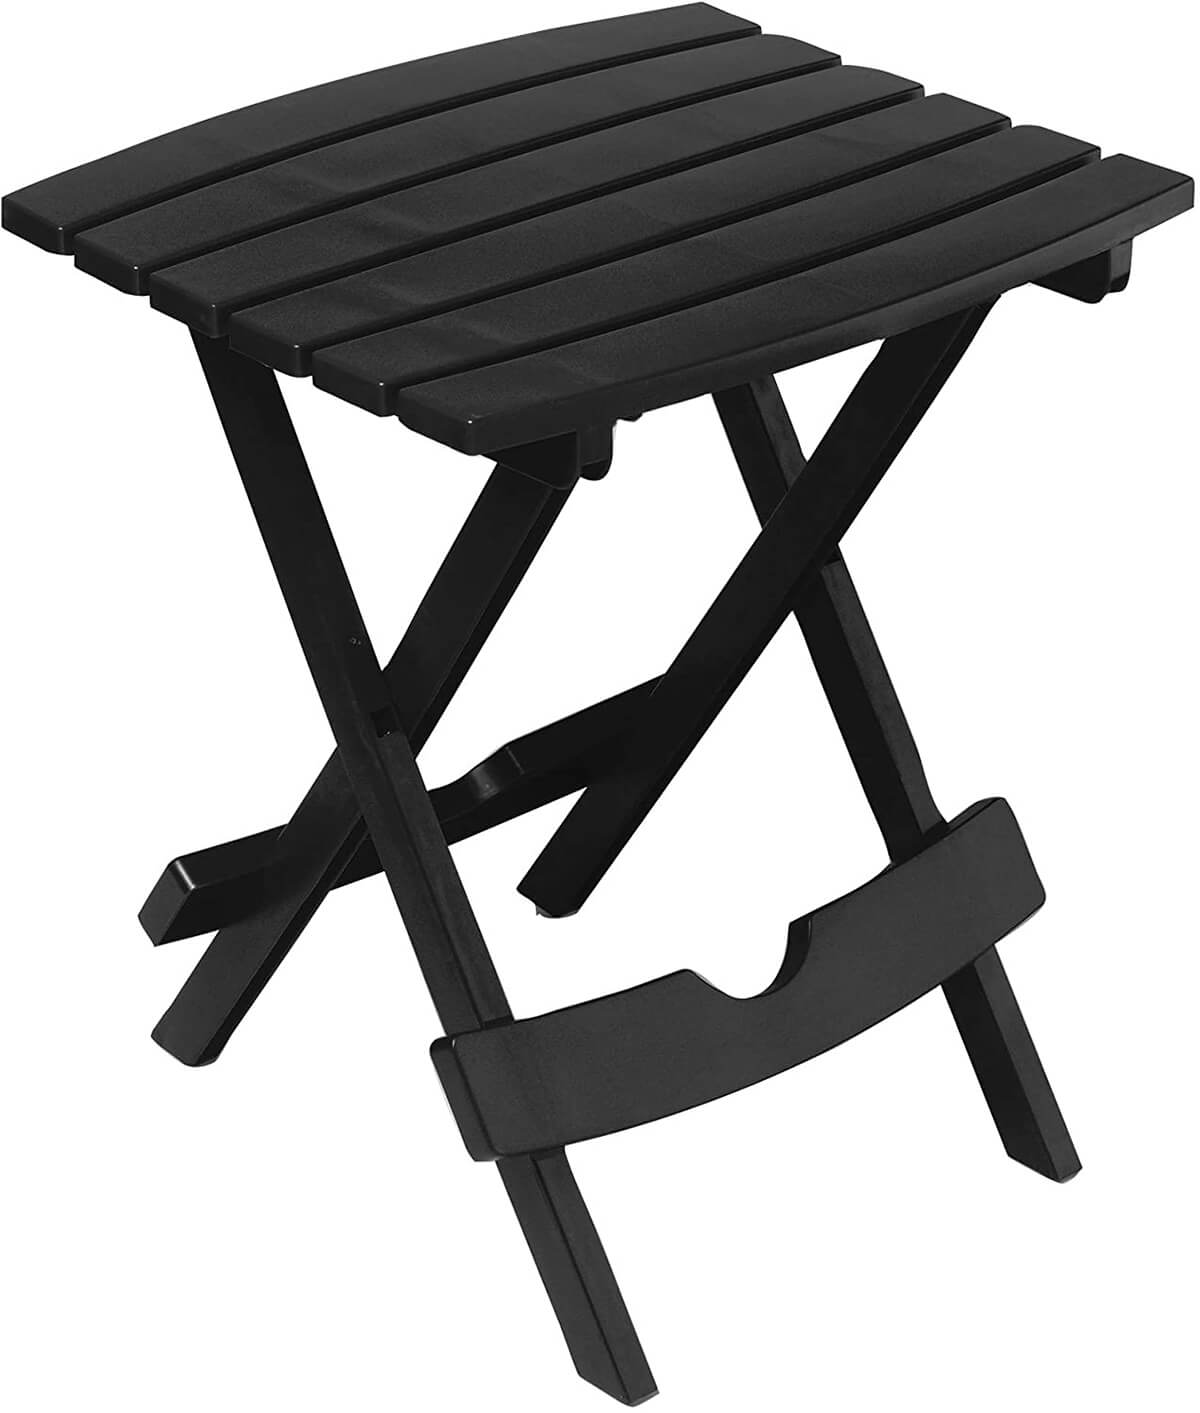 Simple Folding Tables With the Same Stylish Look